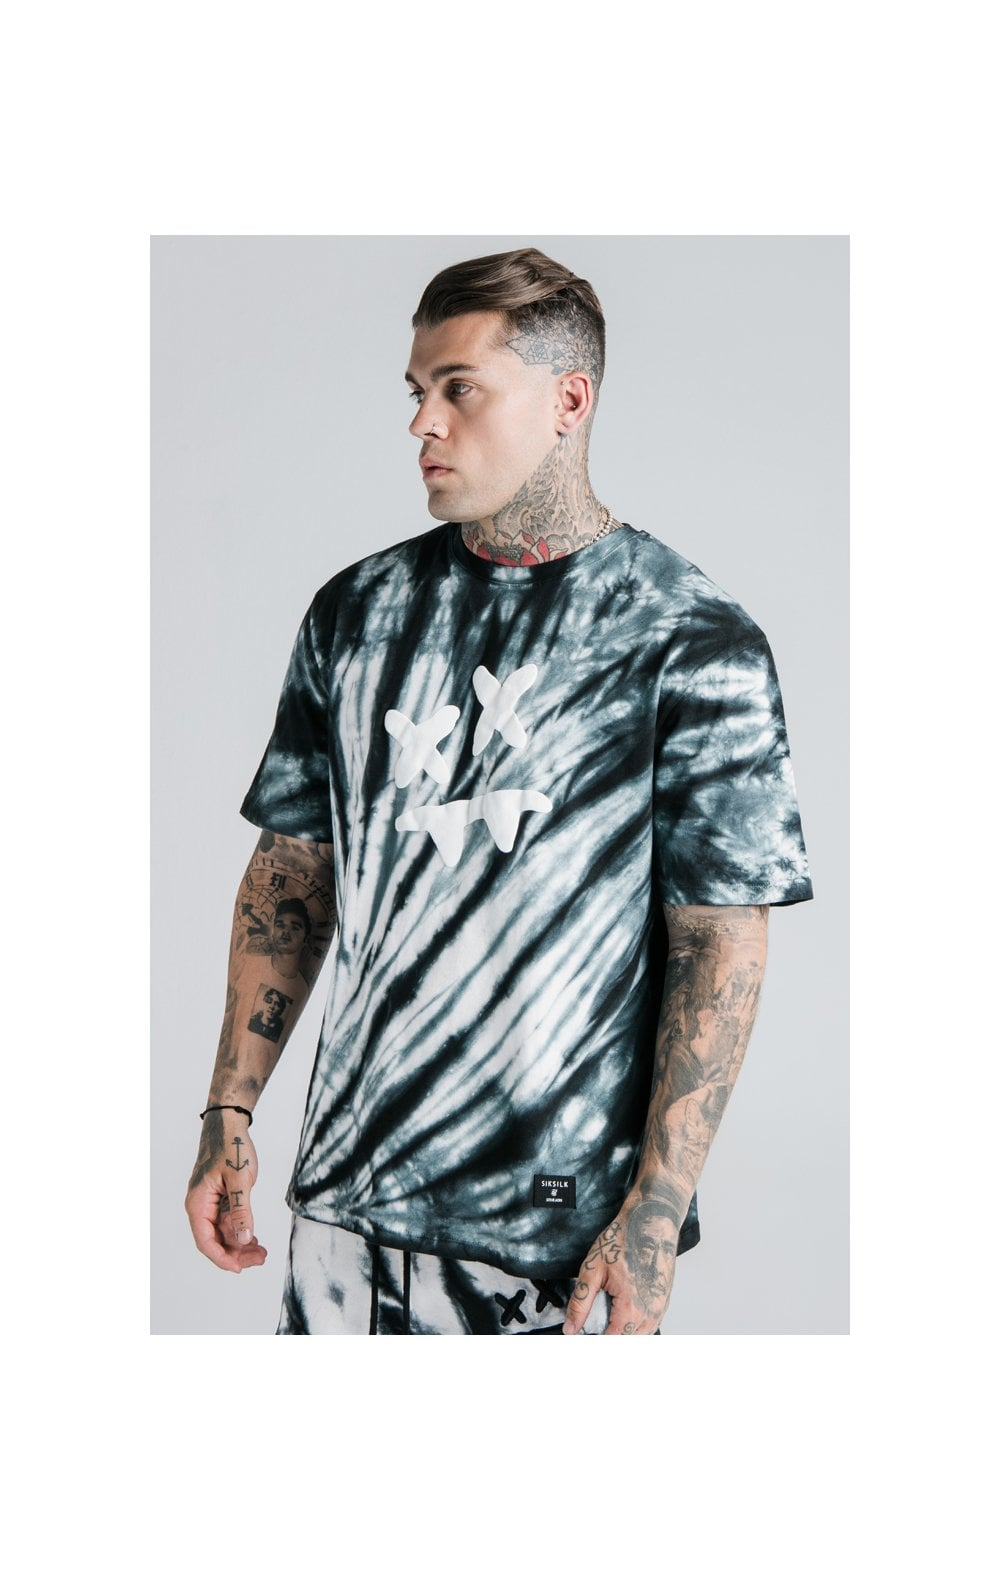 Load image into Gallery viewer, SikSilk X Steve Aoki S/S Oversize Essential Tee – Black & White Tie Dye (1)